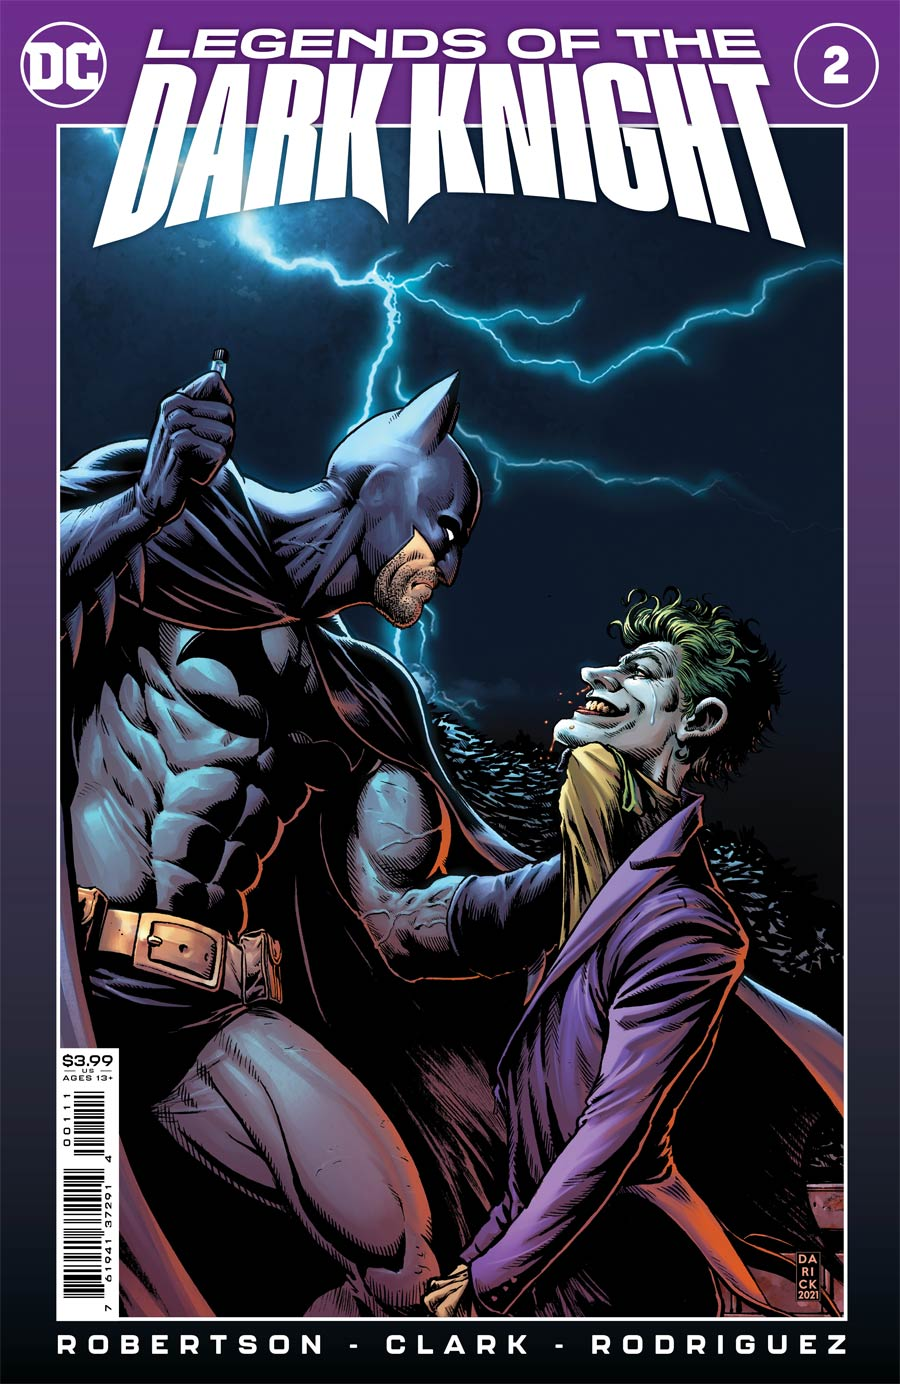 Legends Of The Dark Knight Vol 2 #2 Cover A Regular Darick Robertson & Diego Rodriguez Cover